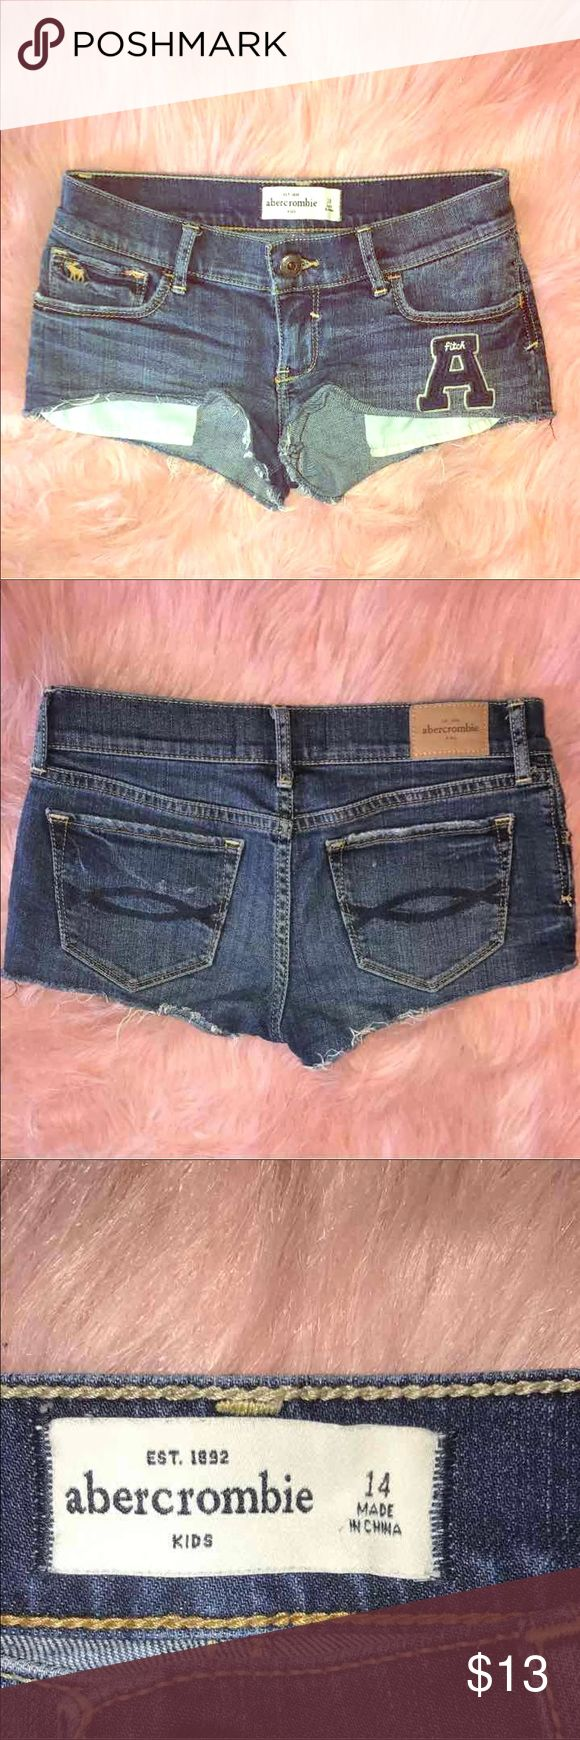 Abercrombie girls size 14 These are absolutely adorable!! My daughter is just stubborn n wldnt even dare try them on. Bought them frm a friend w/very little wear. I'd say they'd fit a size 12 best! abercrombie kids Bottoms Shorts